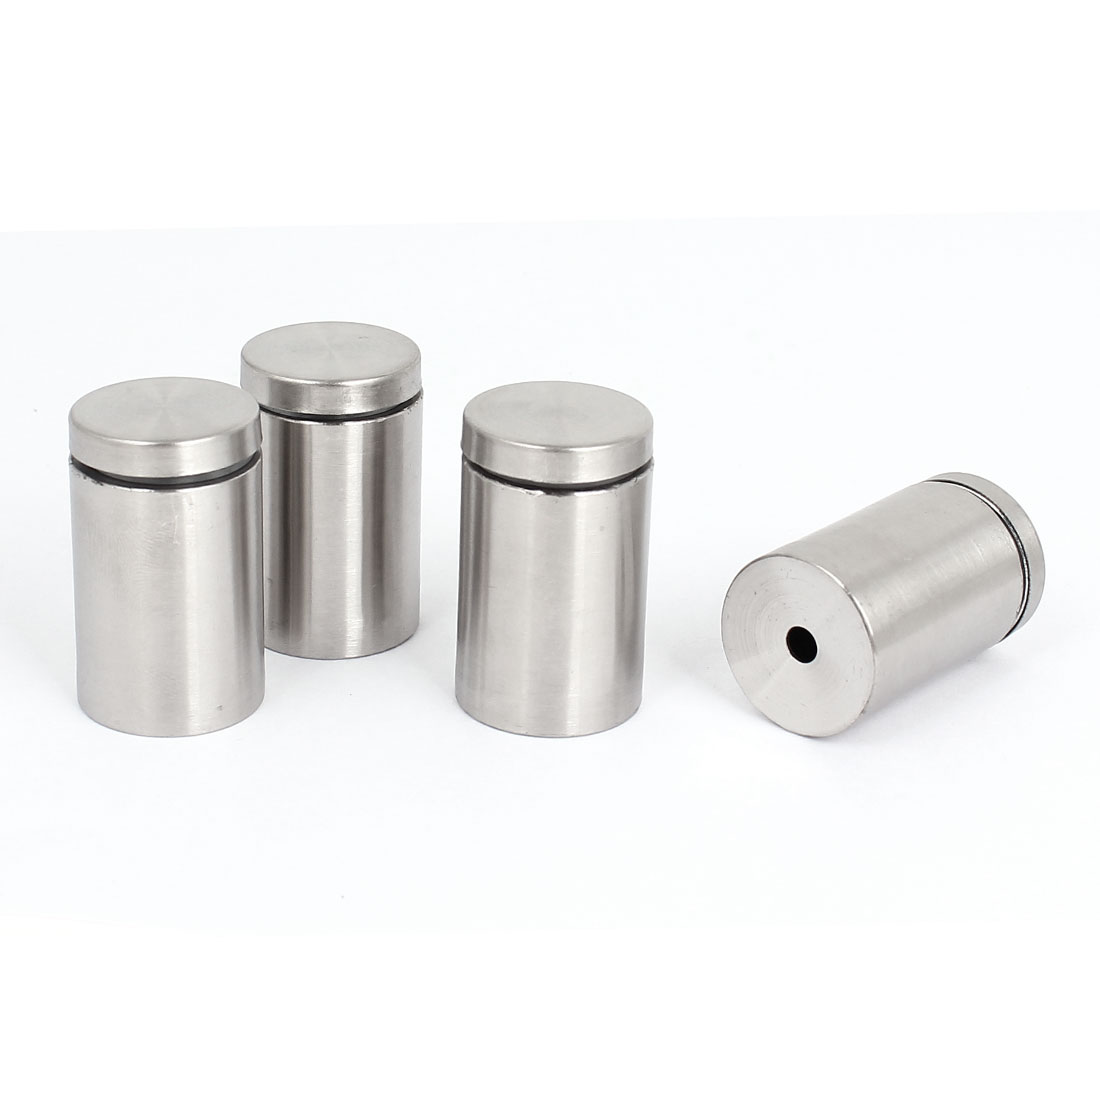 25mm x 40mm Stainless Steel Advertising Nails Glass Standoff Holder 4 Pcs